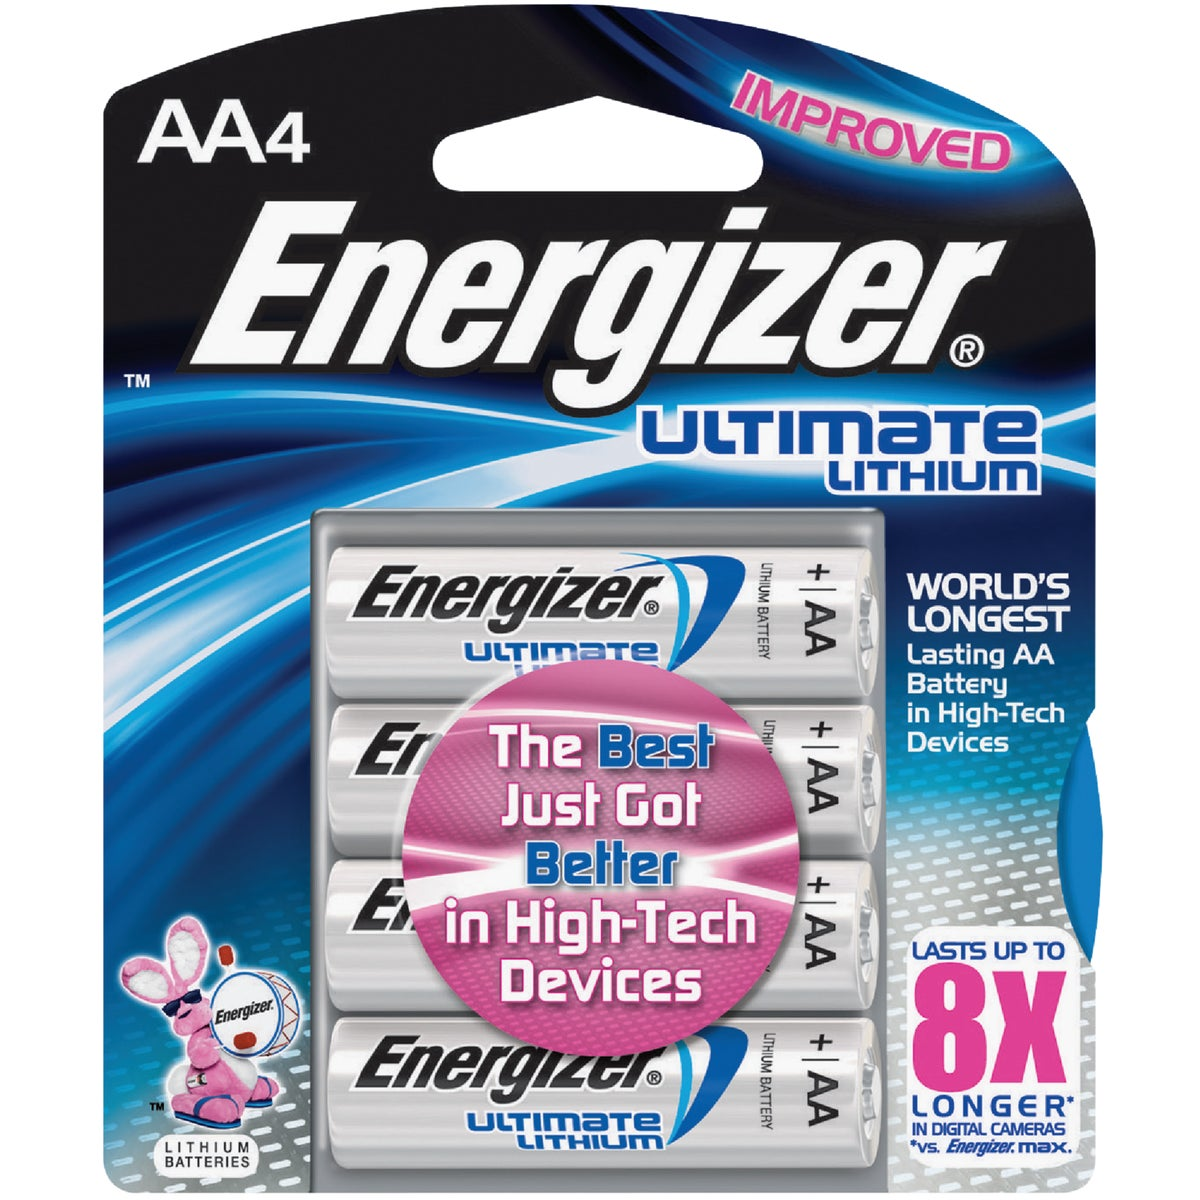 4CD AA ULT LITHIUM BTRY - L91BP-4 by Energizer